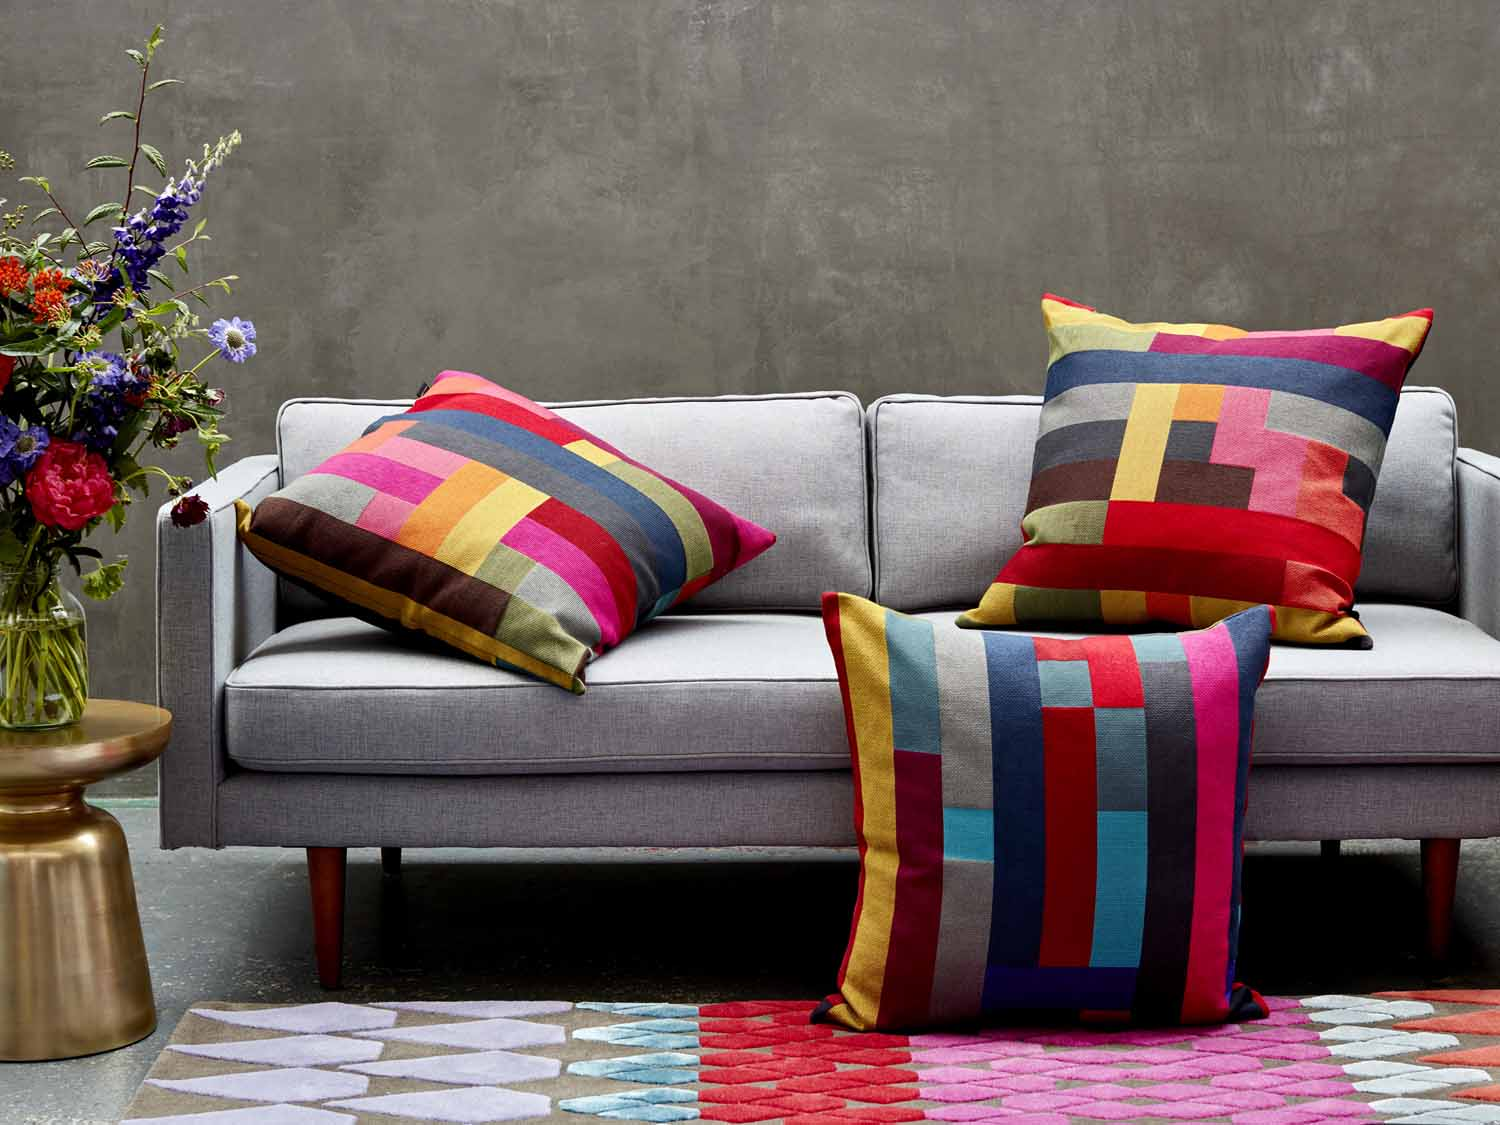 Margo-Selby-Assembly-cushion-lifestyle_LR